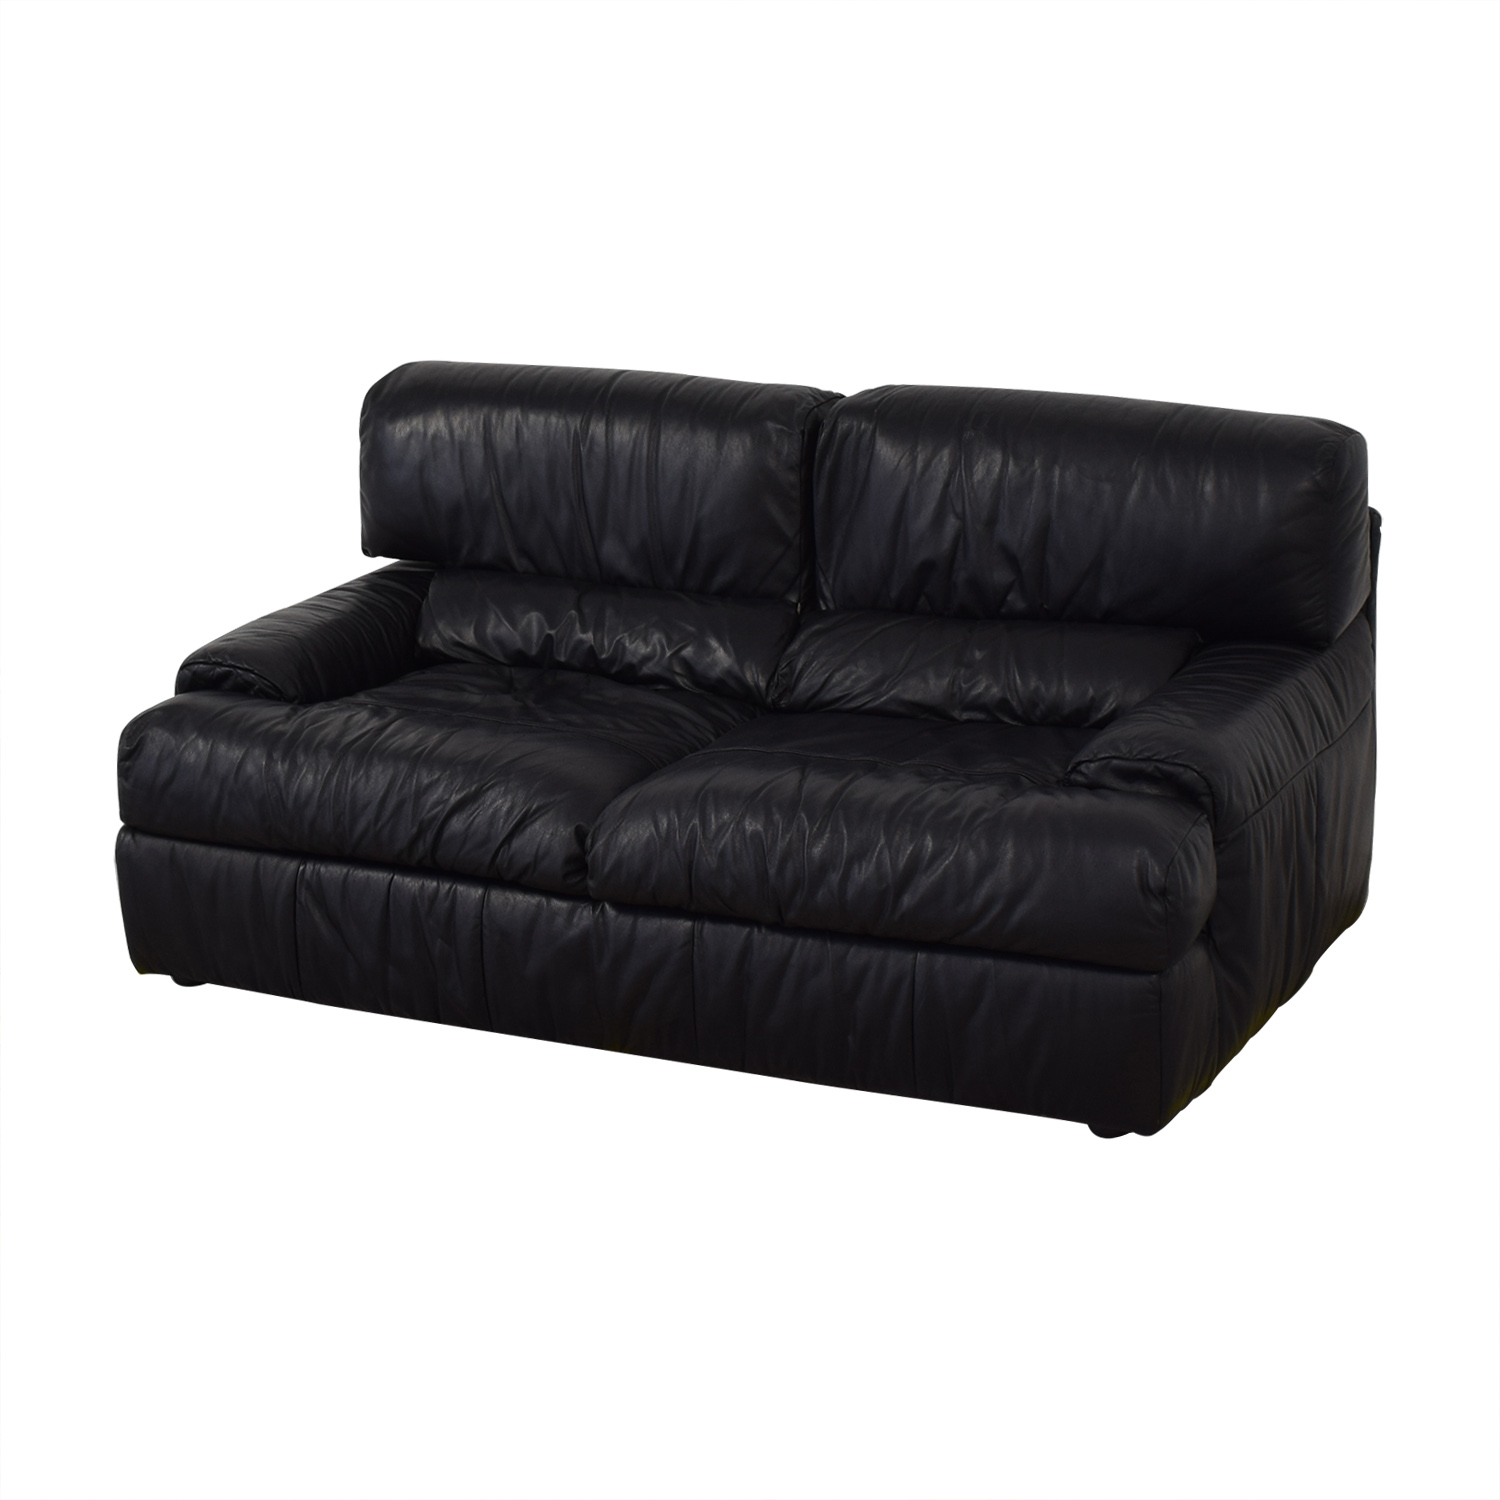 Natuzzi Natuzzi Black Leather Loveseat for sale